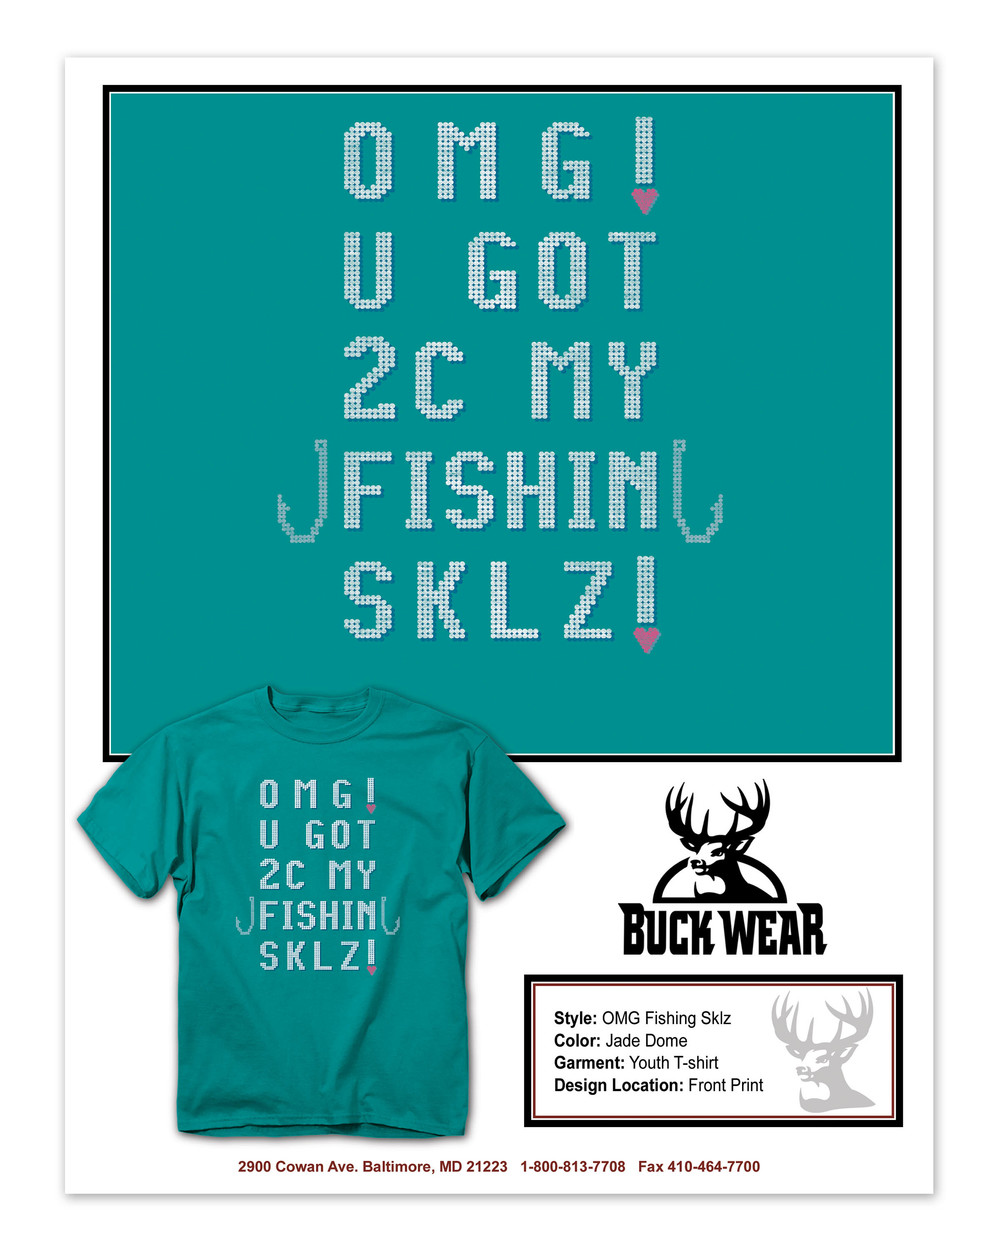 BuckWear Fishin Sklz     Shirt Design